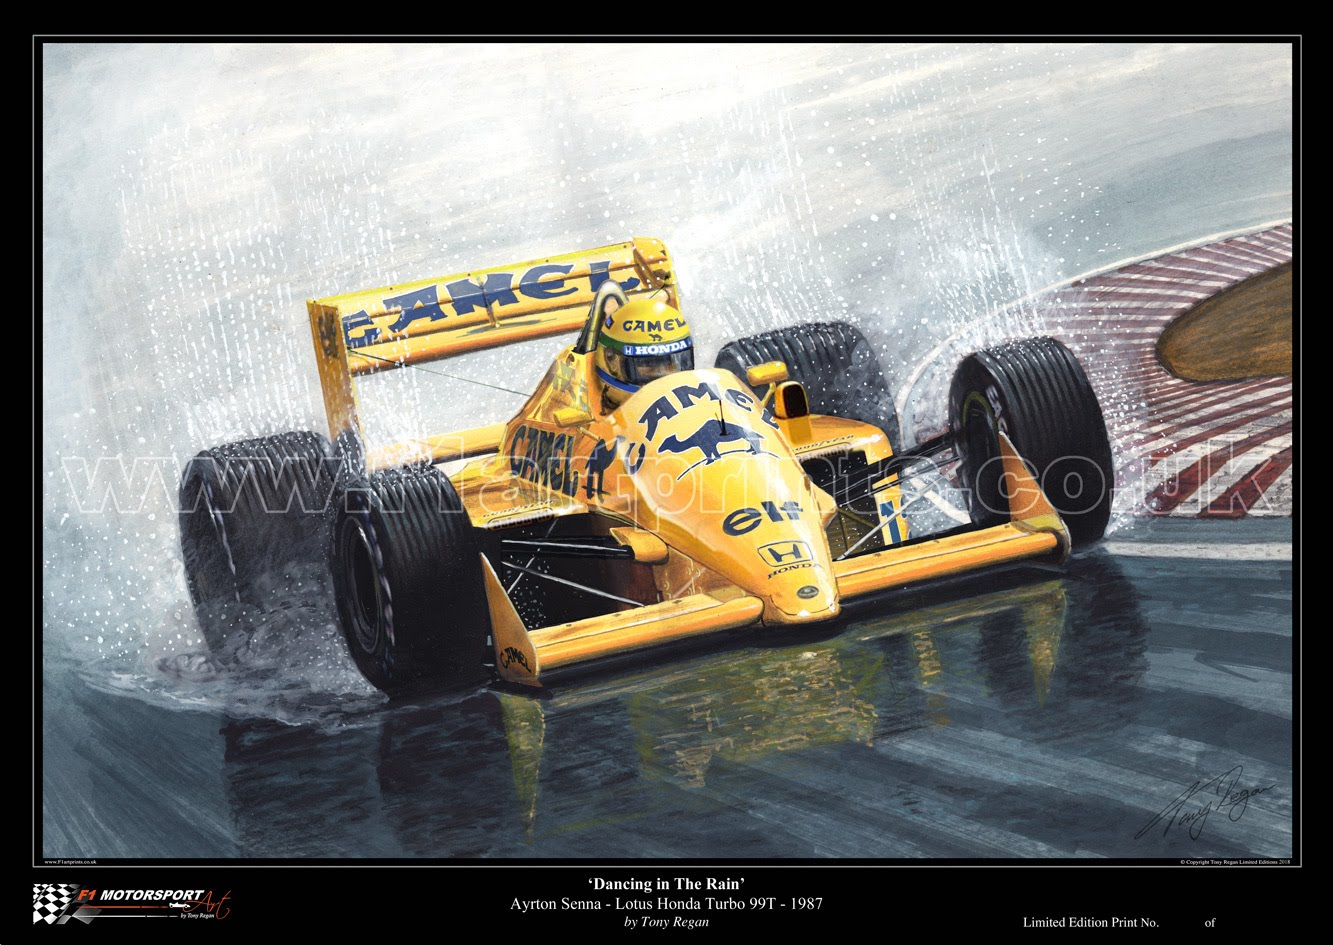 Senna Camel Lotus Turbo 1987 Art